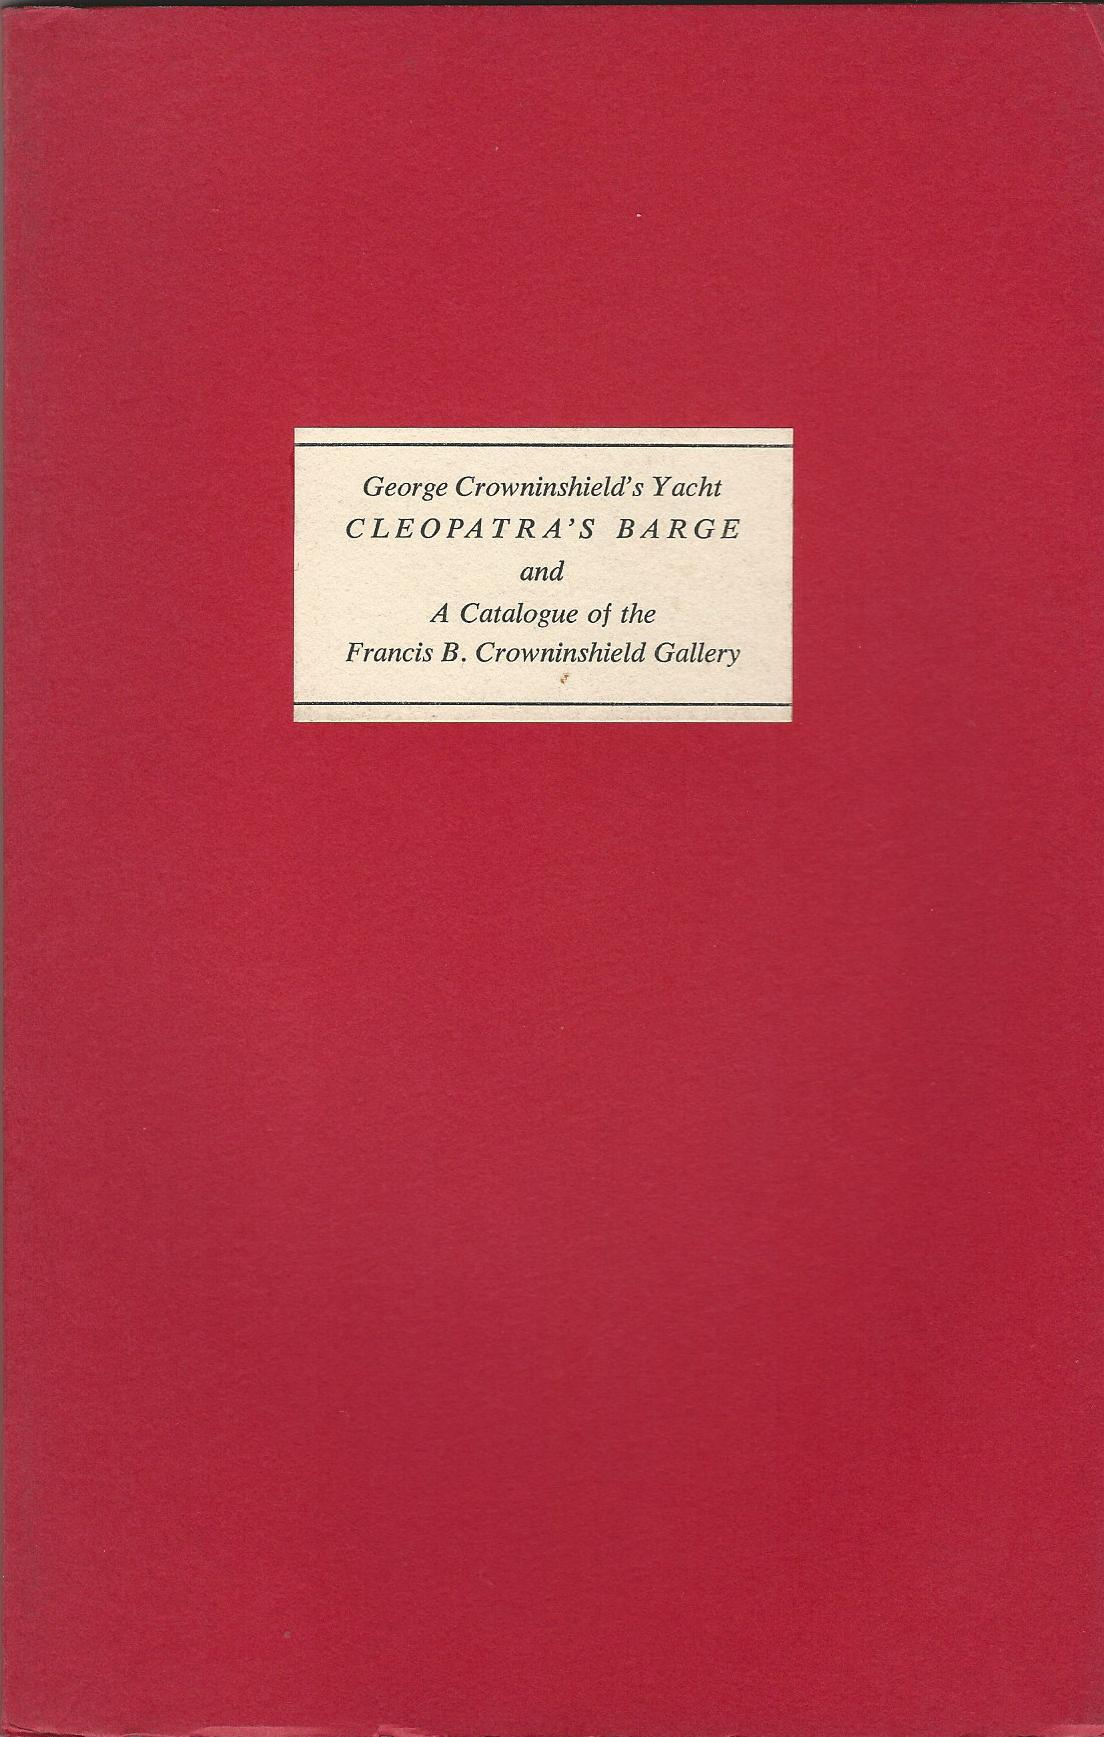 Image for George Crowninshield's Yacht, Cleopatra's Barge and a Catalogue of the Francis B. Crowninshield Gallery.